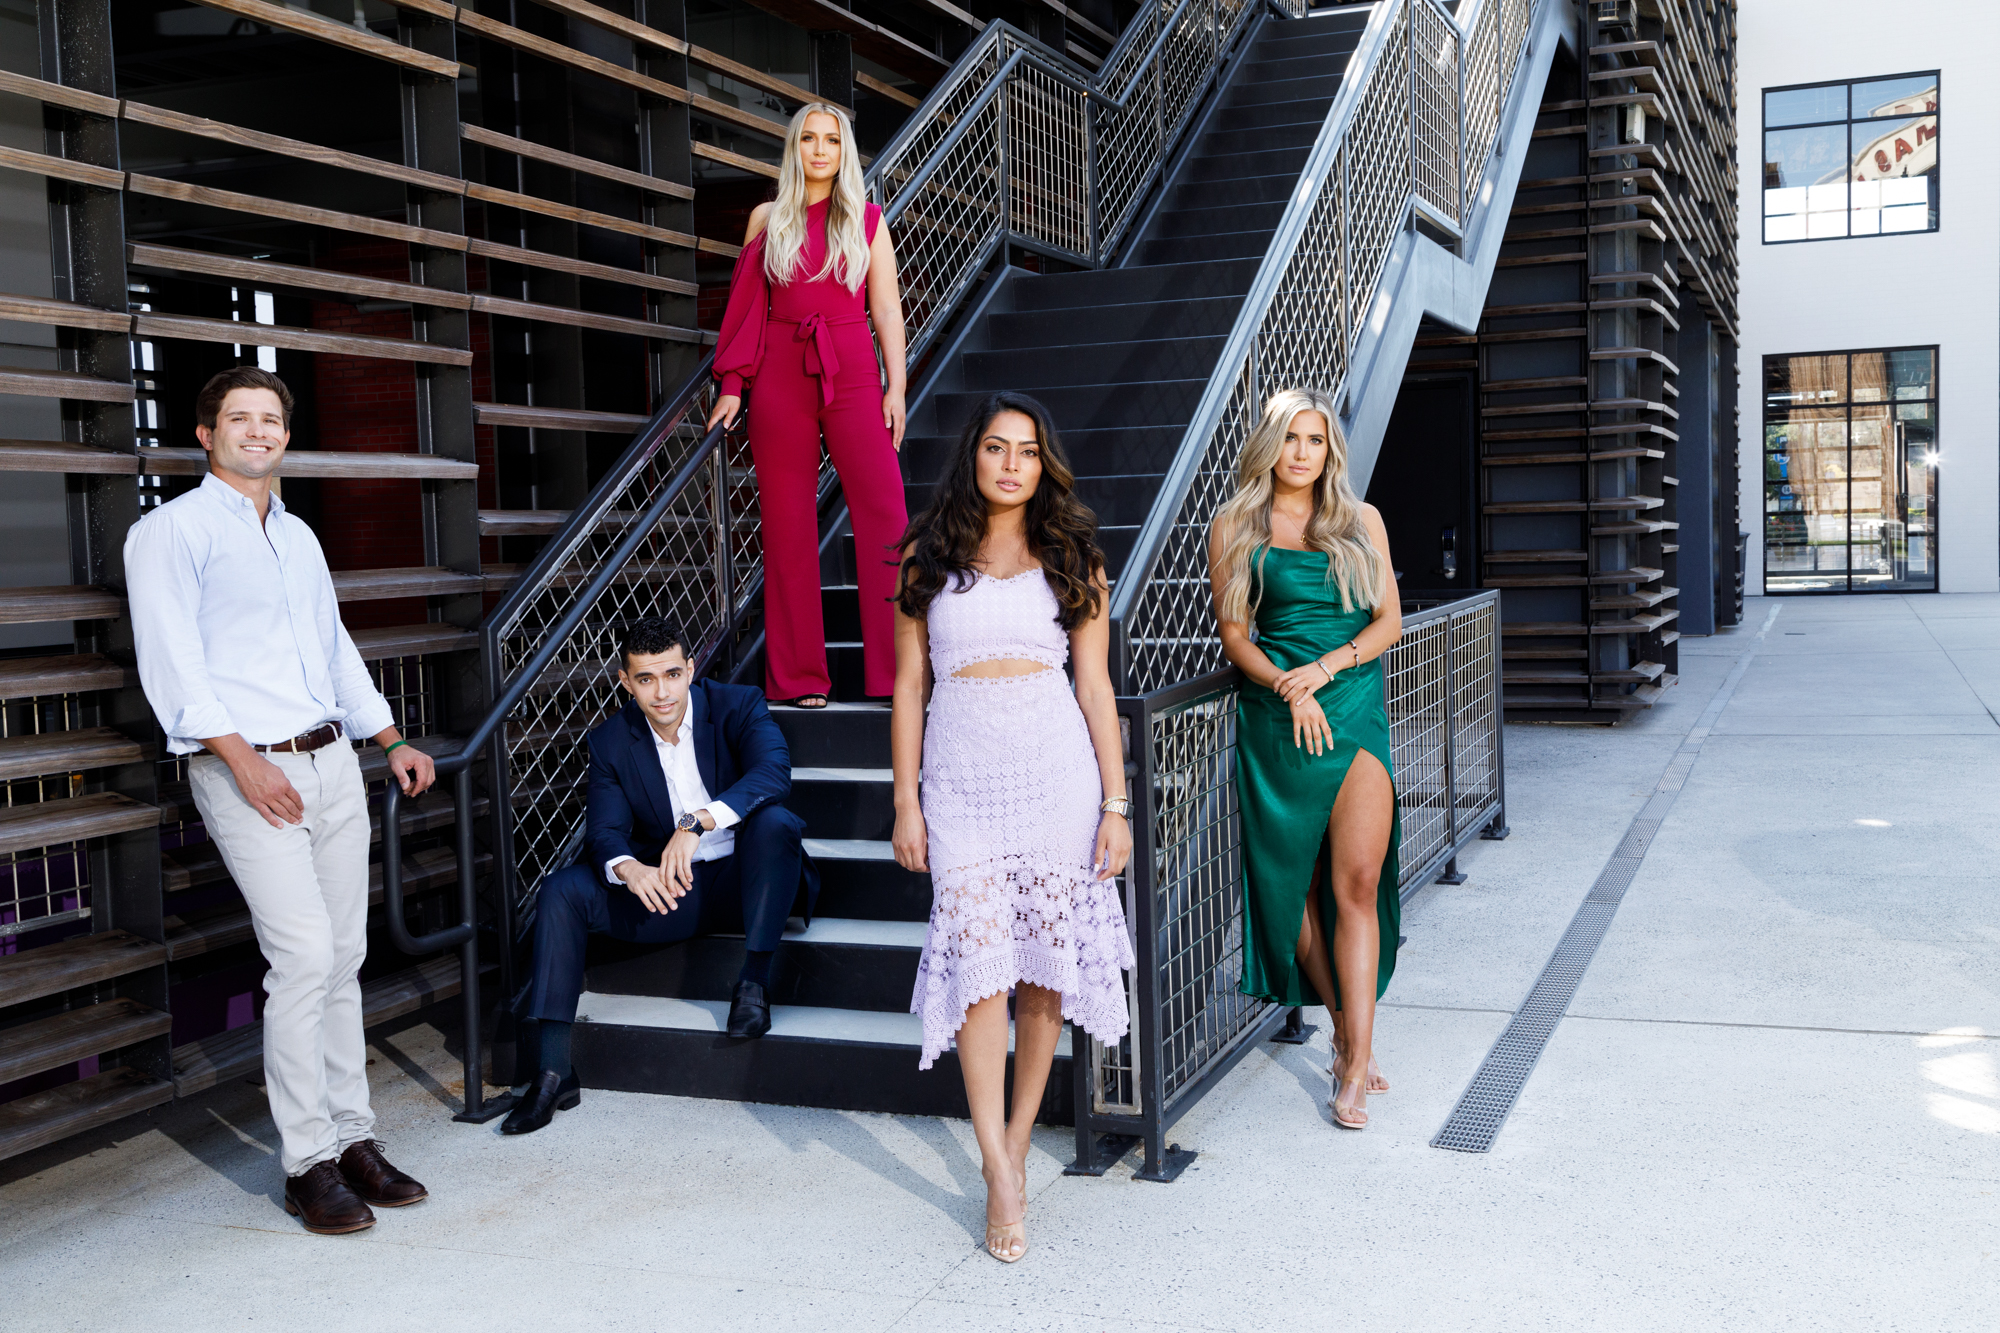 Patrick Heagney photographs the fifty most beautiful Atlantans lounging on the stairs for Jezebel Magazines yearly feature at Atlantic Station